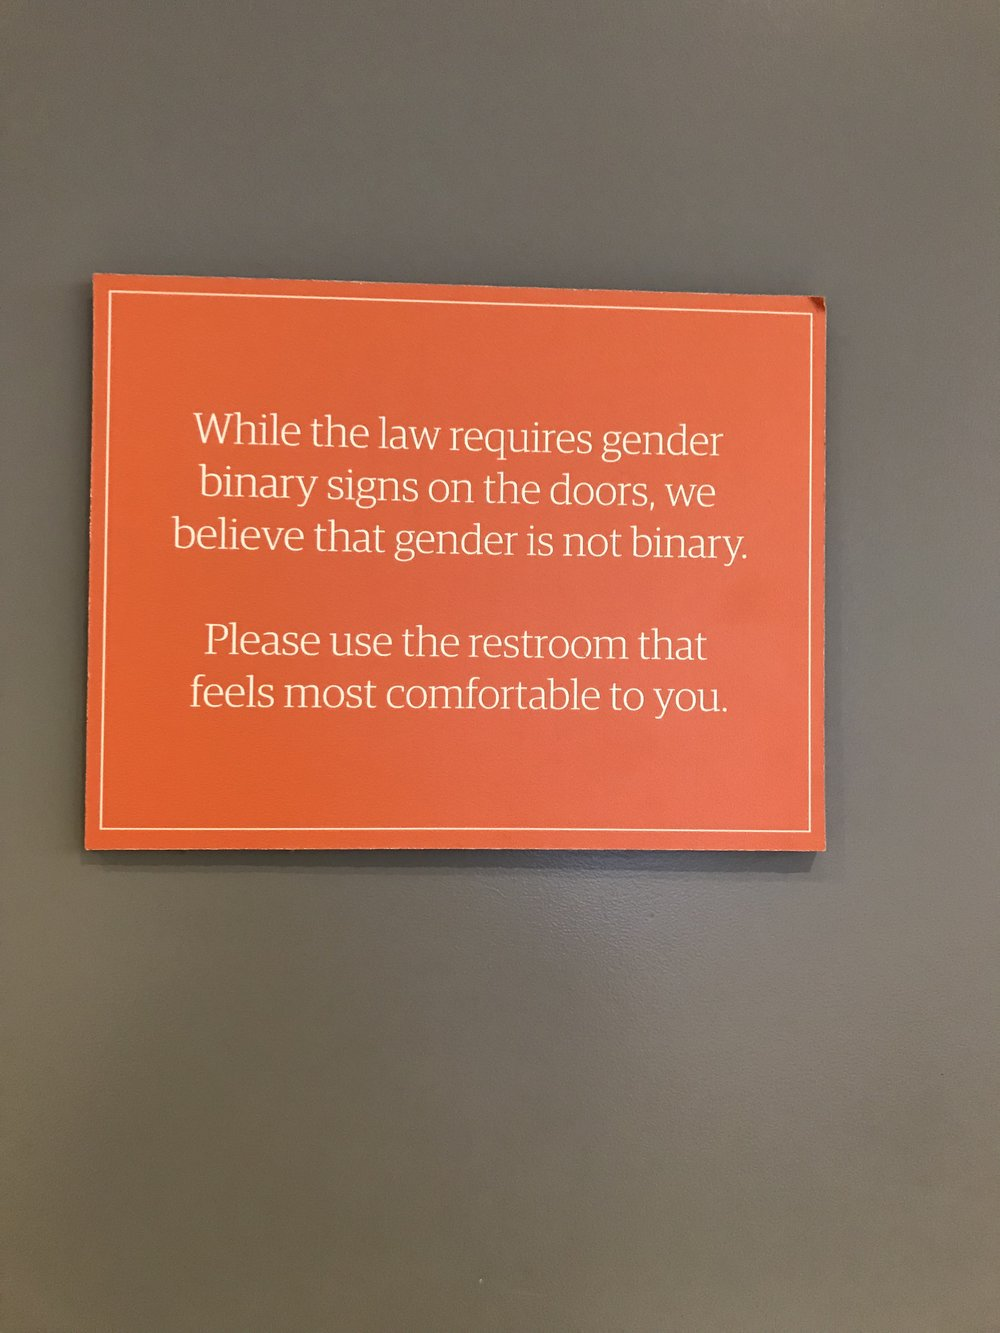 etsy all inclusive right down tothe bathroom signs.jpg